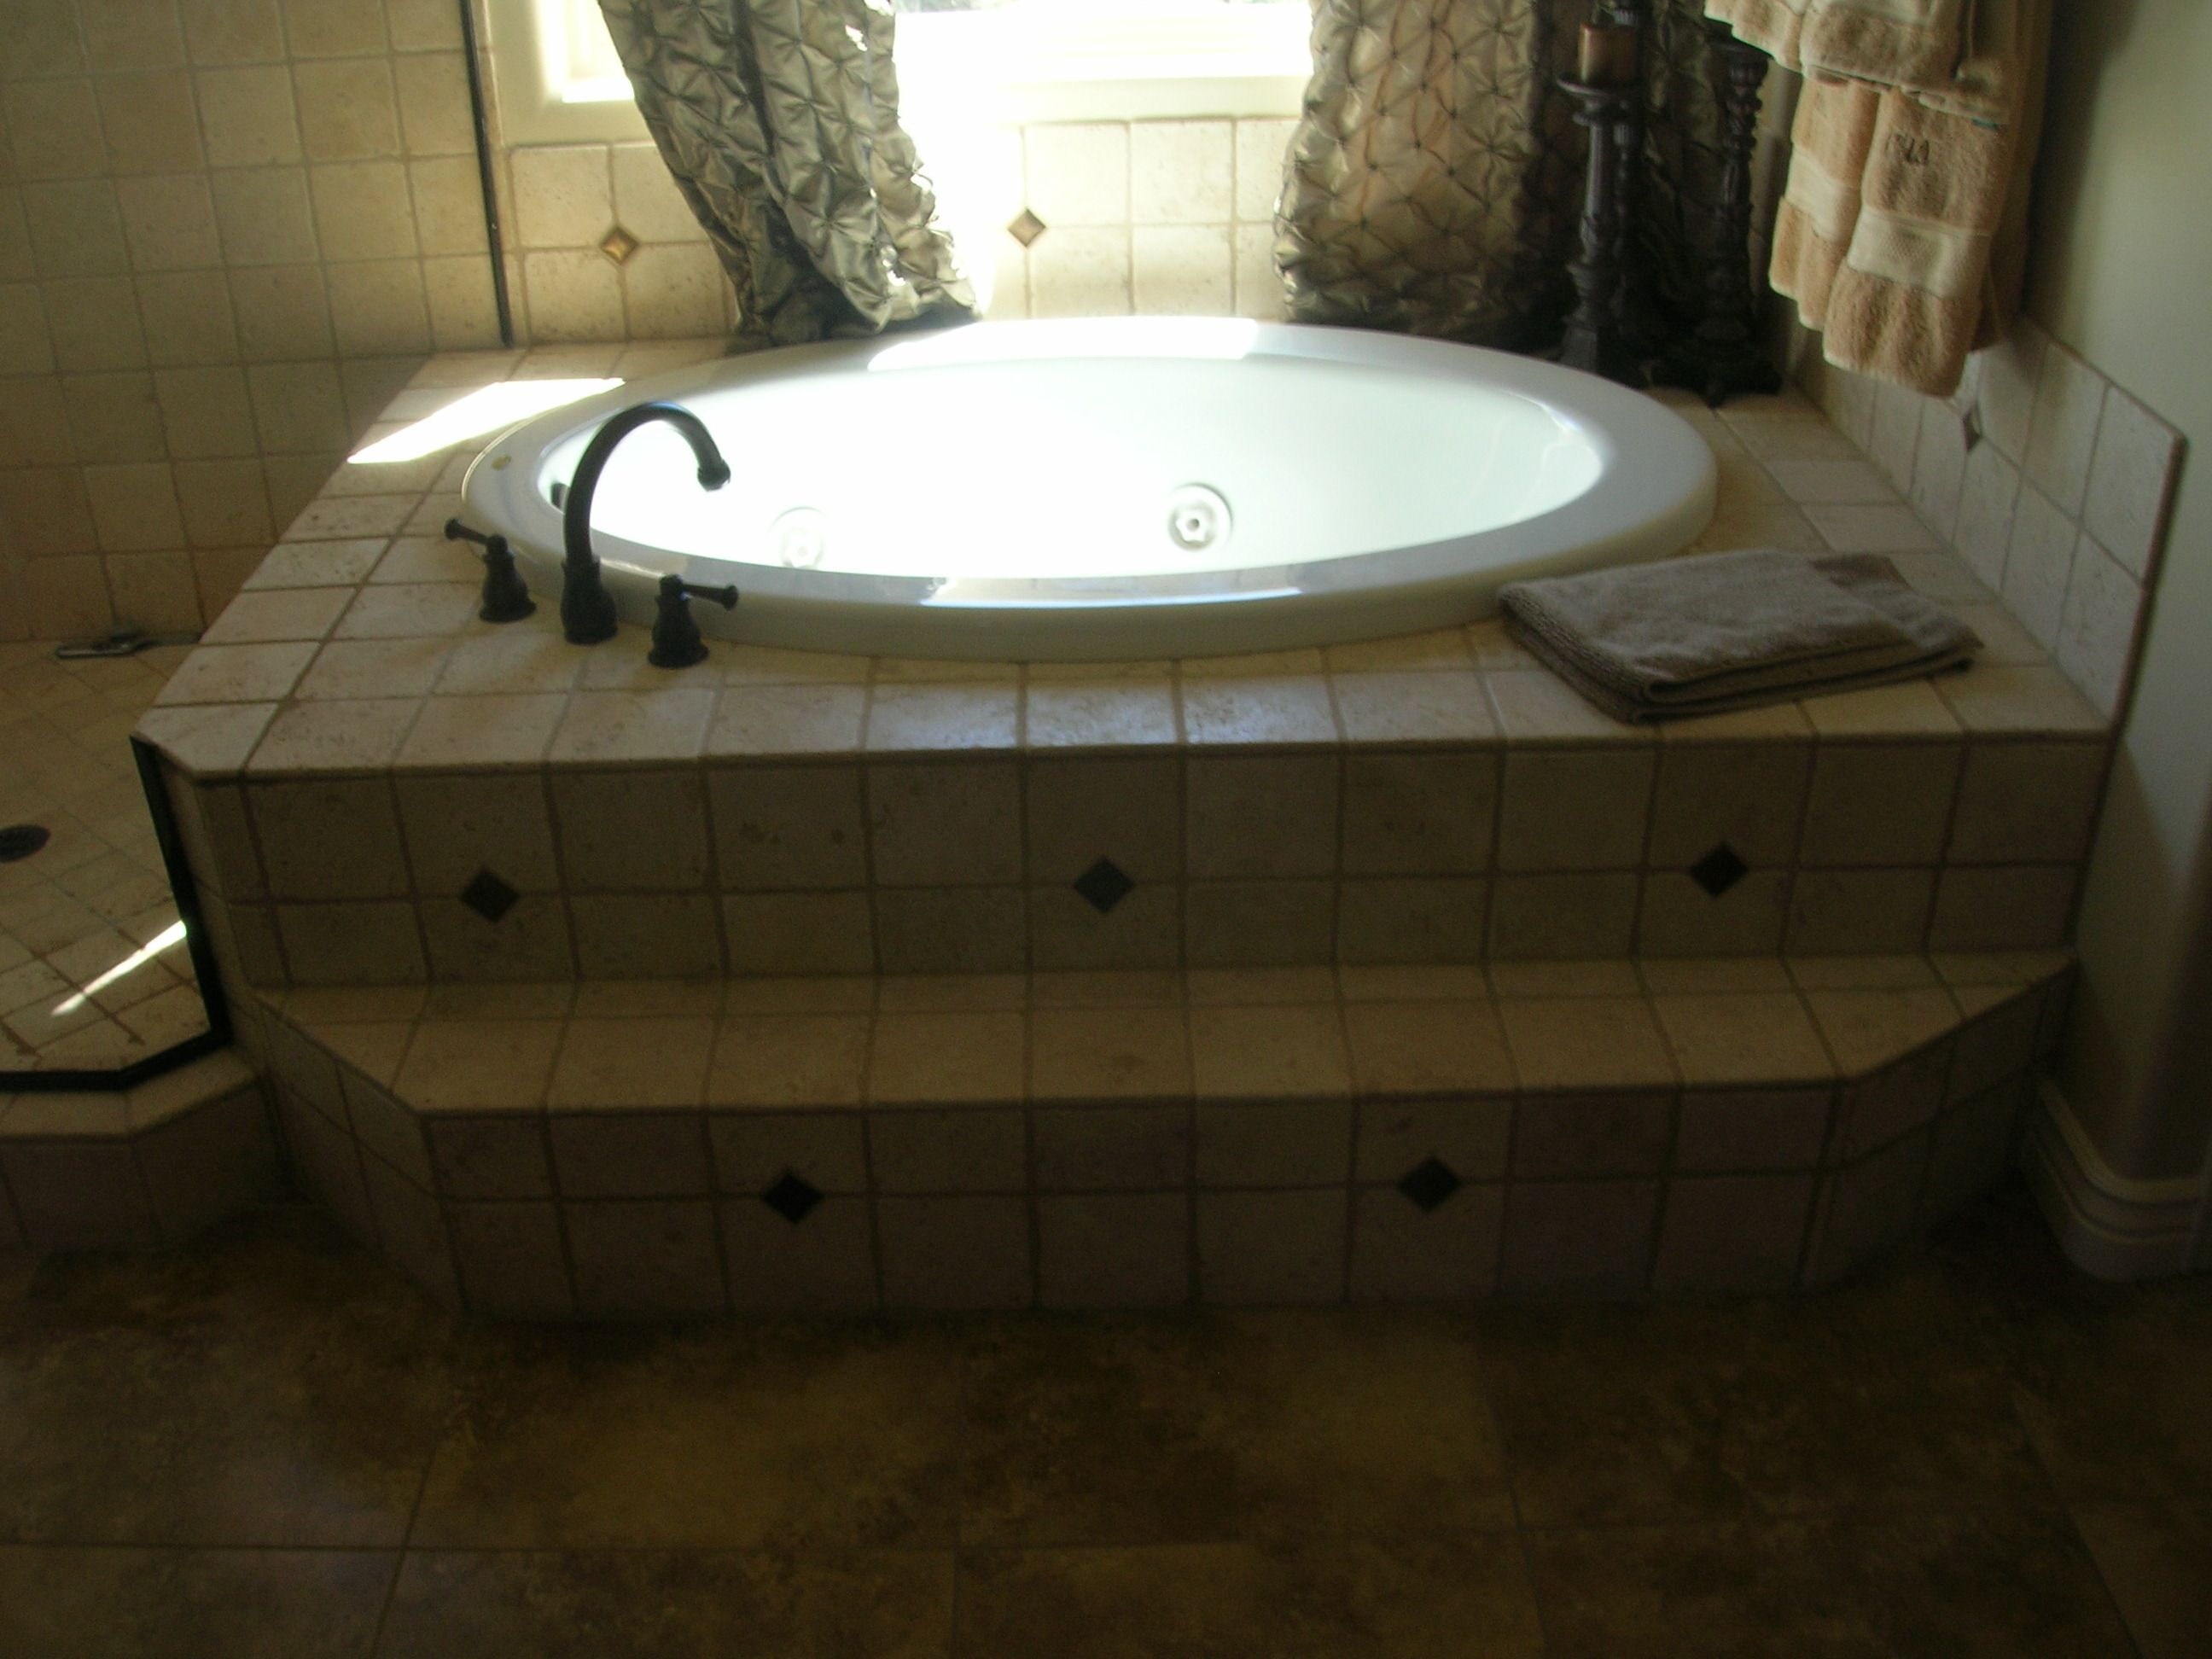 Drop in jacuzzi tub tile surround by Mingus Tile in Prescott  AZ  www. Drop in jacuzzi tub tile surround by Mingus Tile in Prescott  AZ